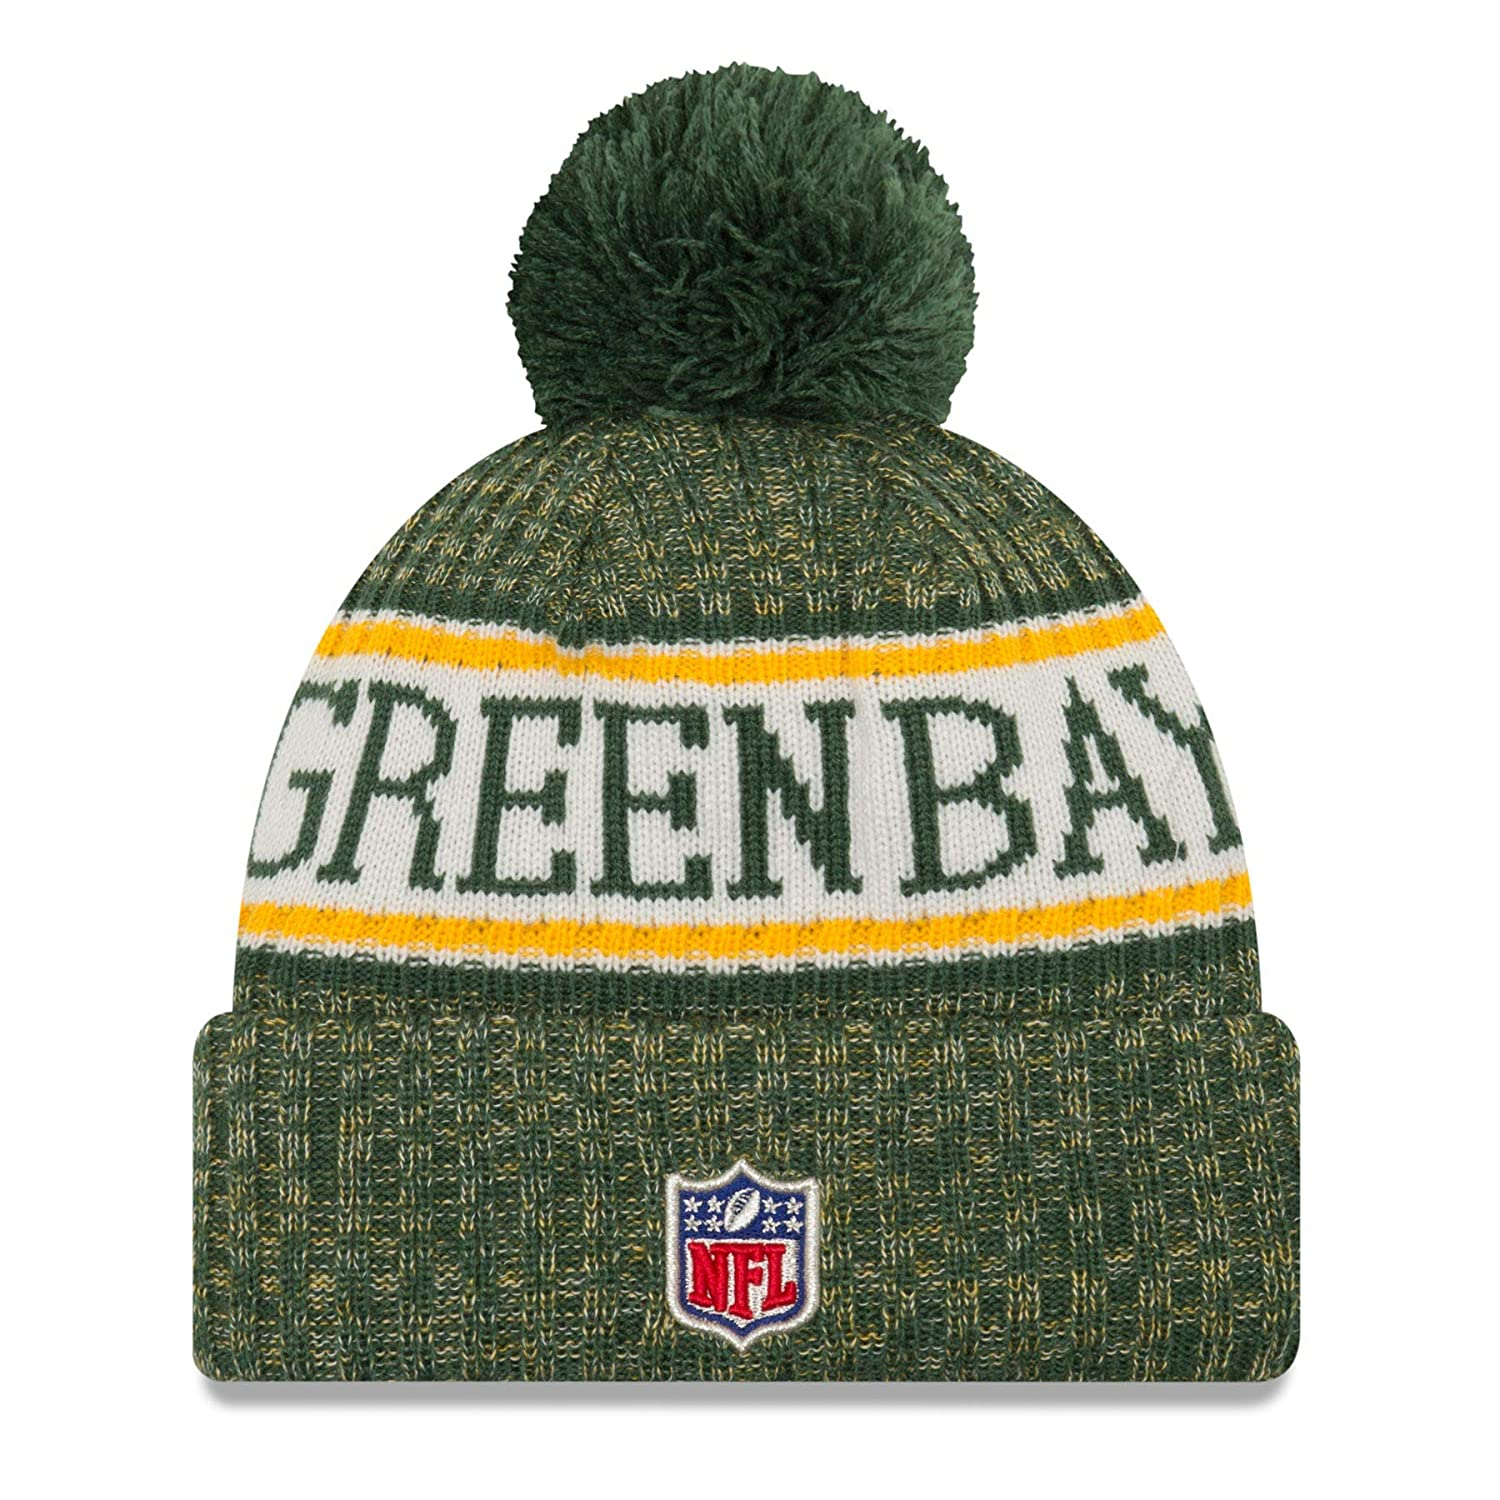 New Era NFL Sideline Bobble Knit 2018//2019 Season Beanie